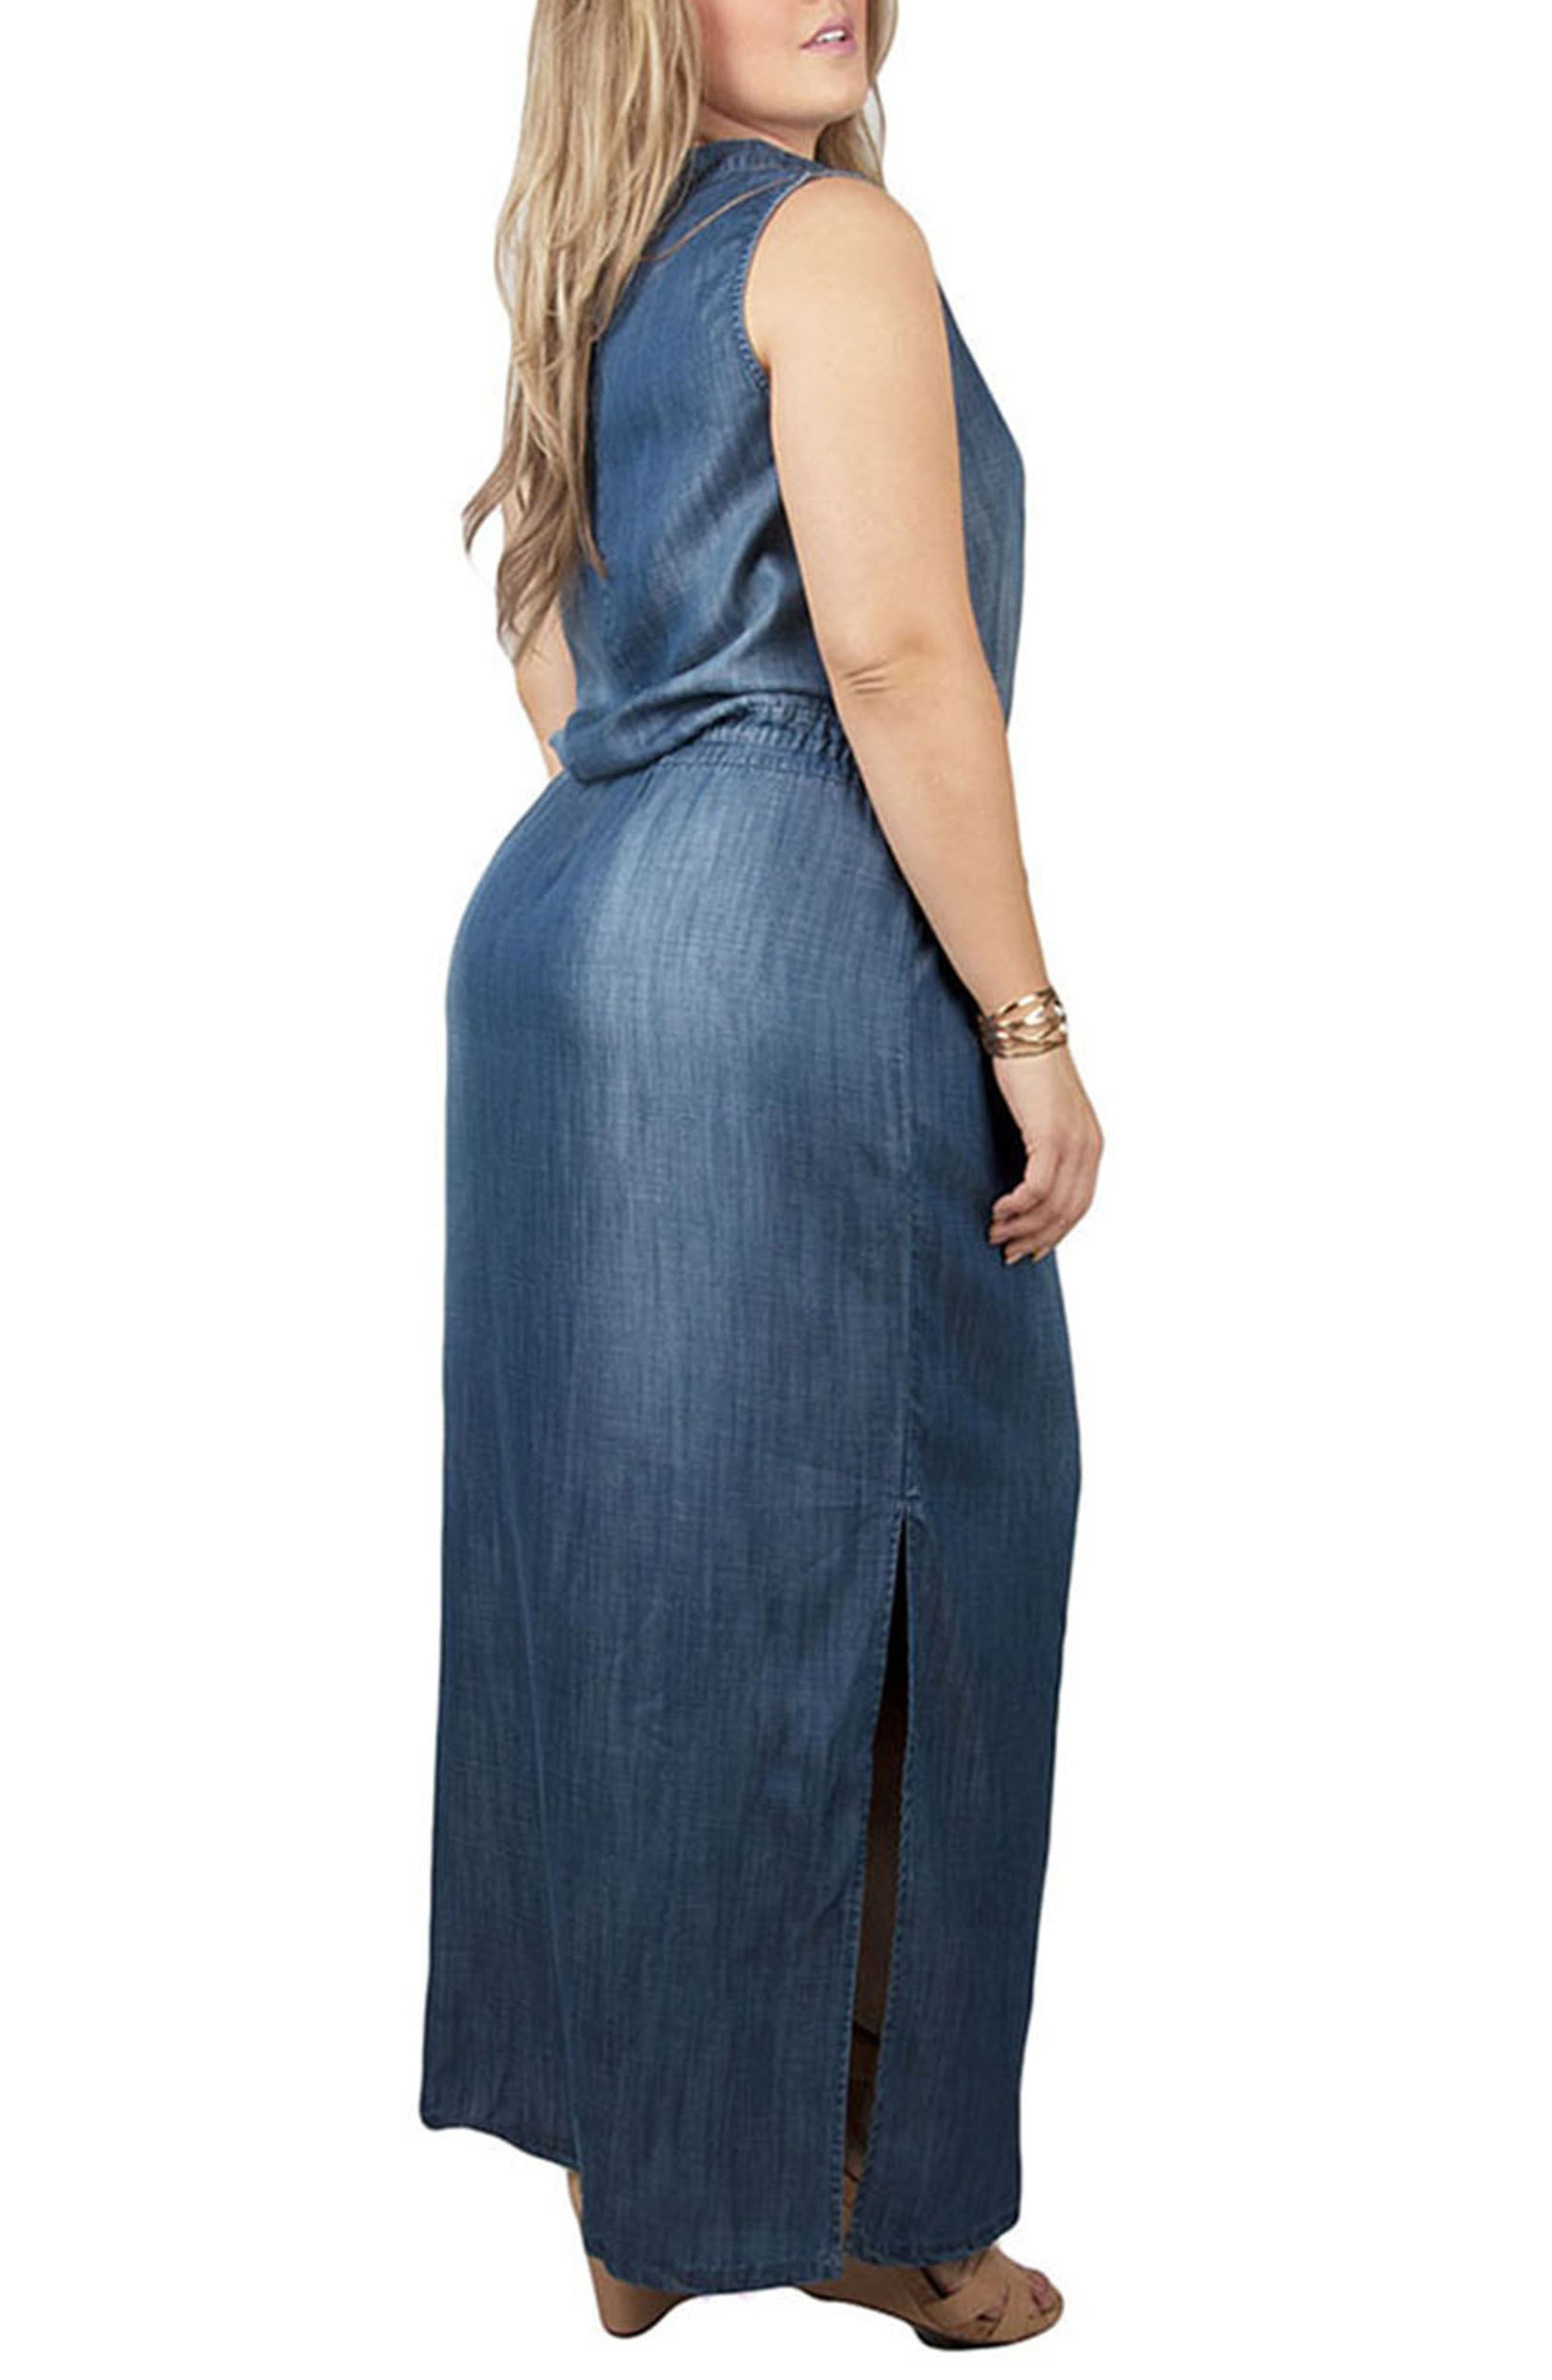 Makayla Denim Drawstring Maxi Dress,                             Alternate thumbnail 2, color,                             BLUE